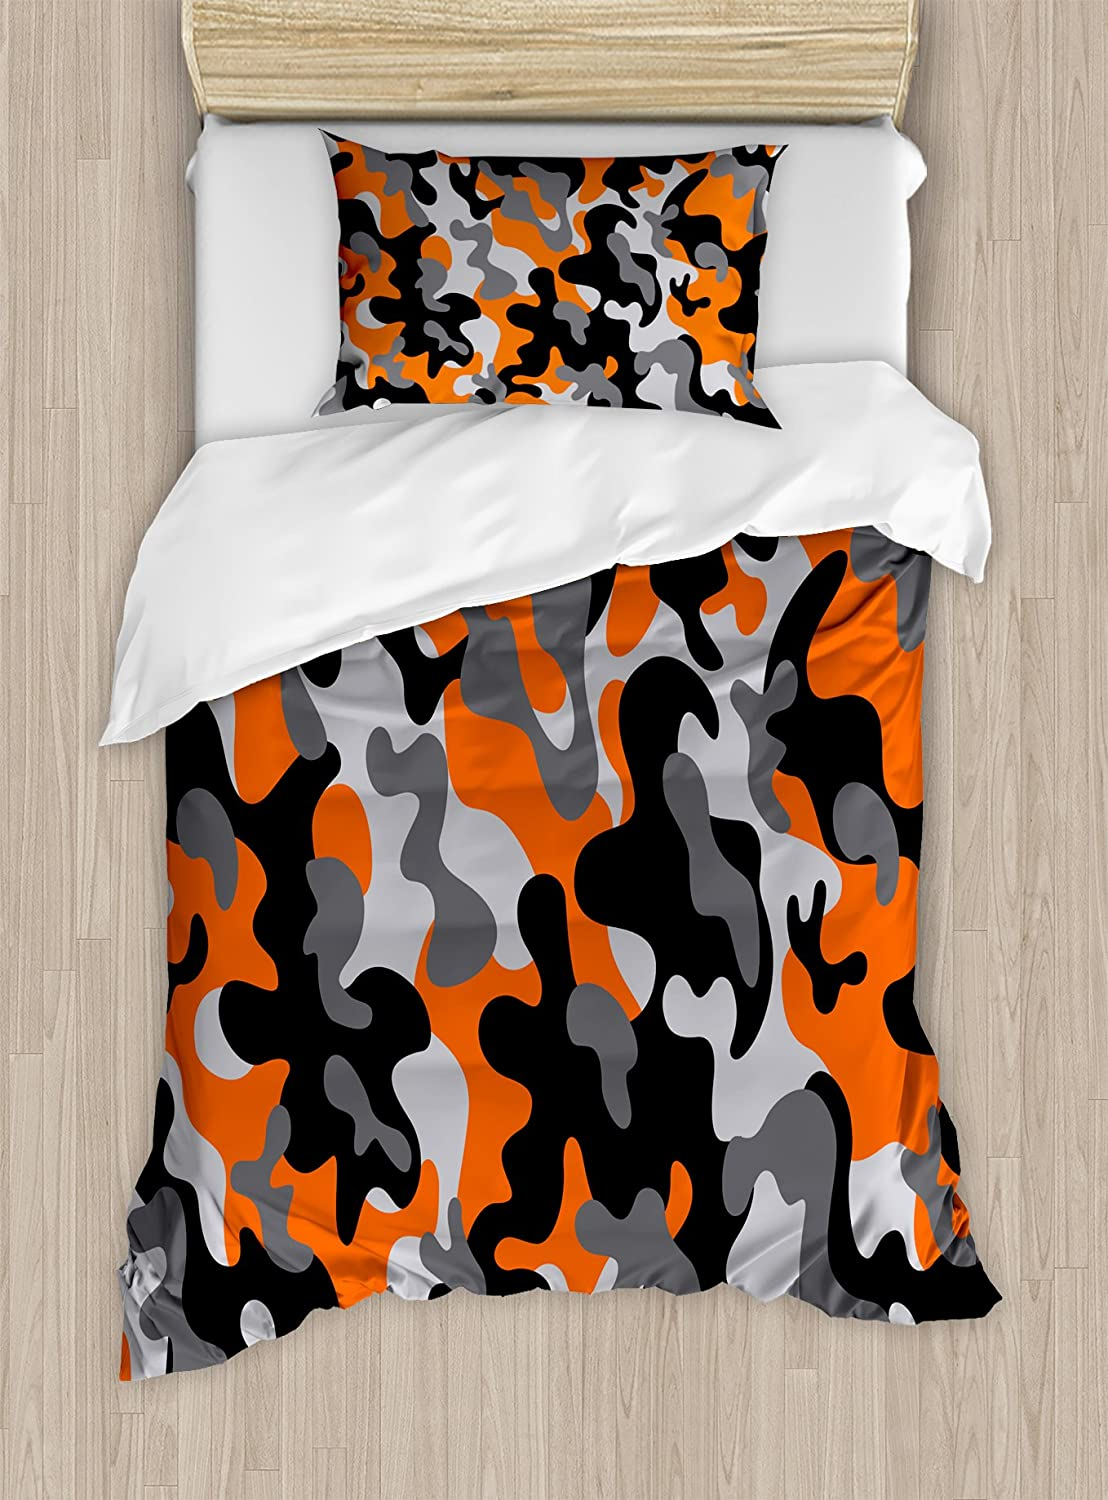 Ambesonne Camo Duvet Cover Set, Vibrant Camouflage Lattice Like Service Theme Modern Design Print, Decorative 2 Piece Bedding Set with 1 Pillow Sham, Twin Size, Orange Black